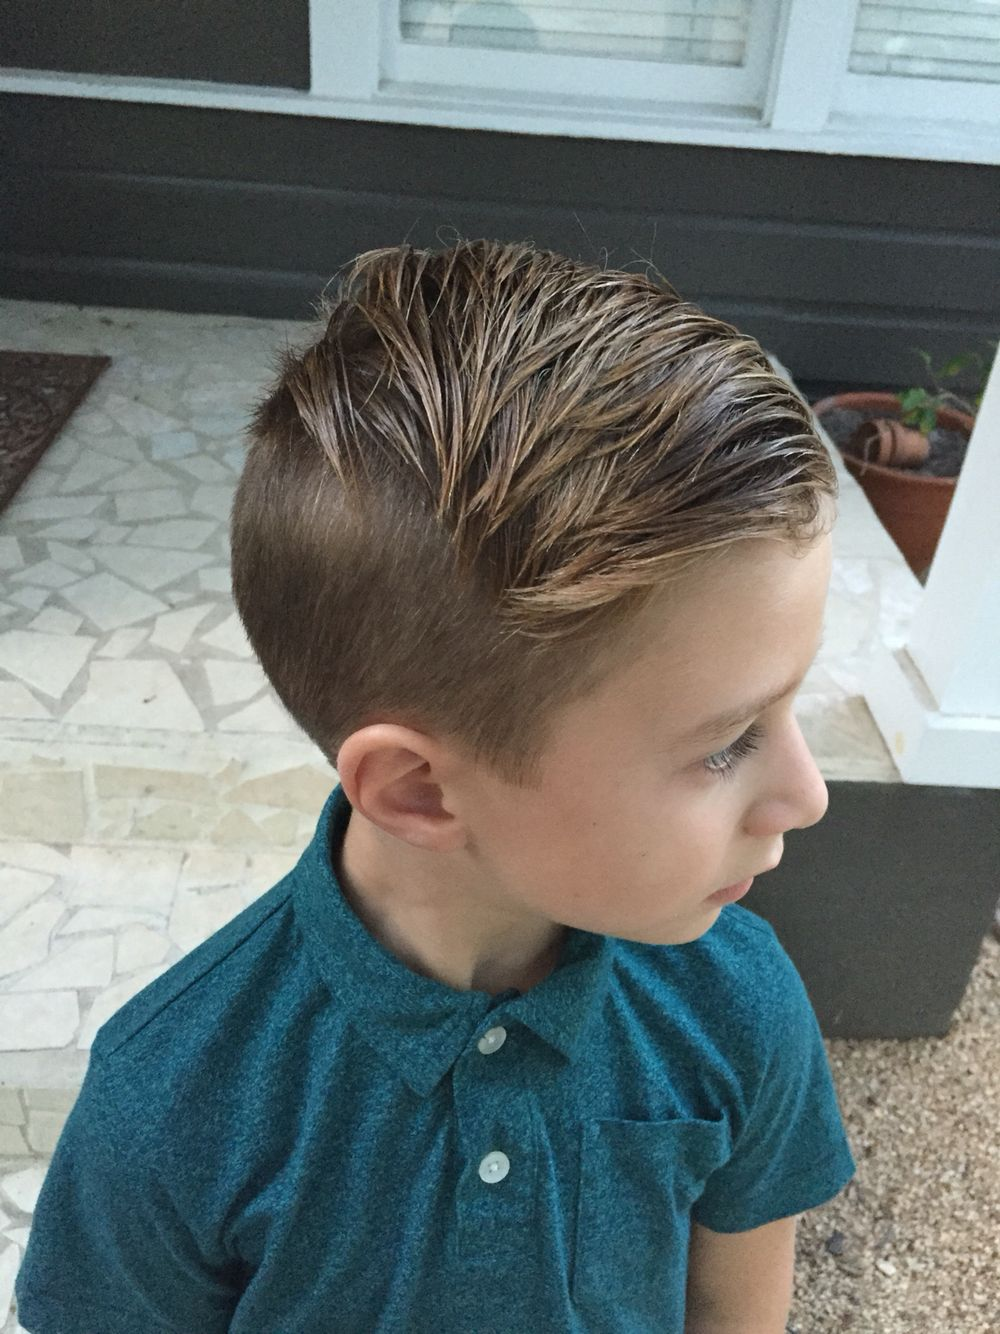 Boy Hair Lakes Undercut 7 Years Old Has Never Been More Hipster